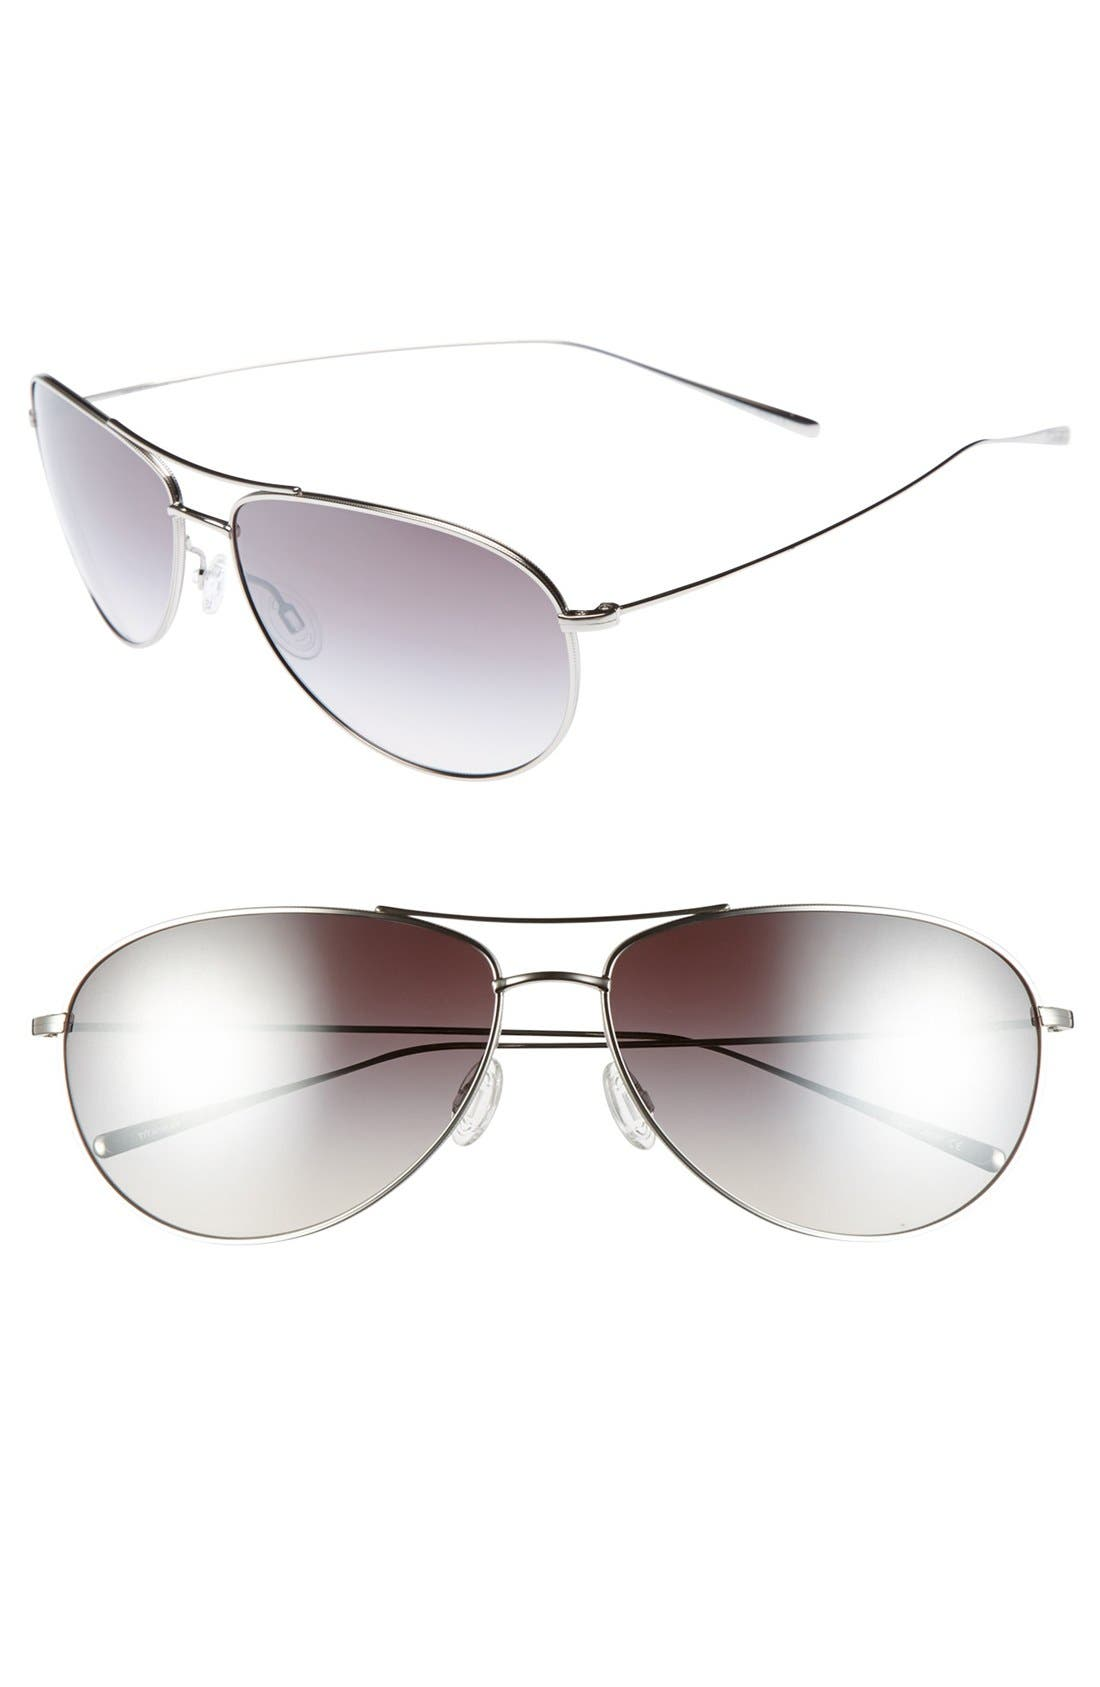 Main Image - Oliver Peoples 'Tavern' 61mm Aviator Sunglasses